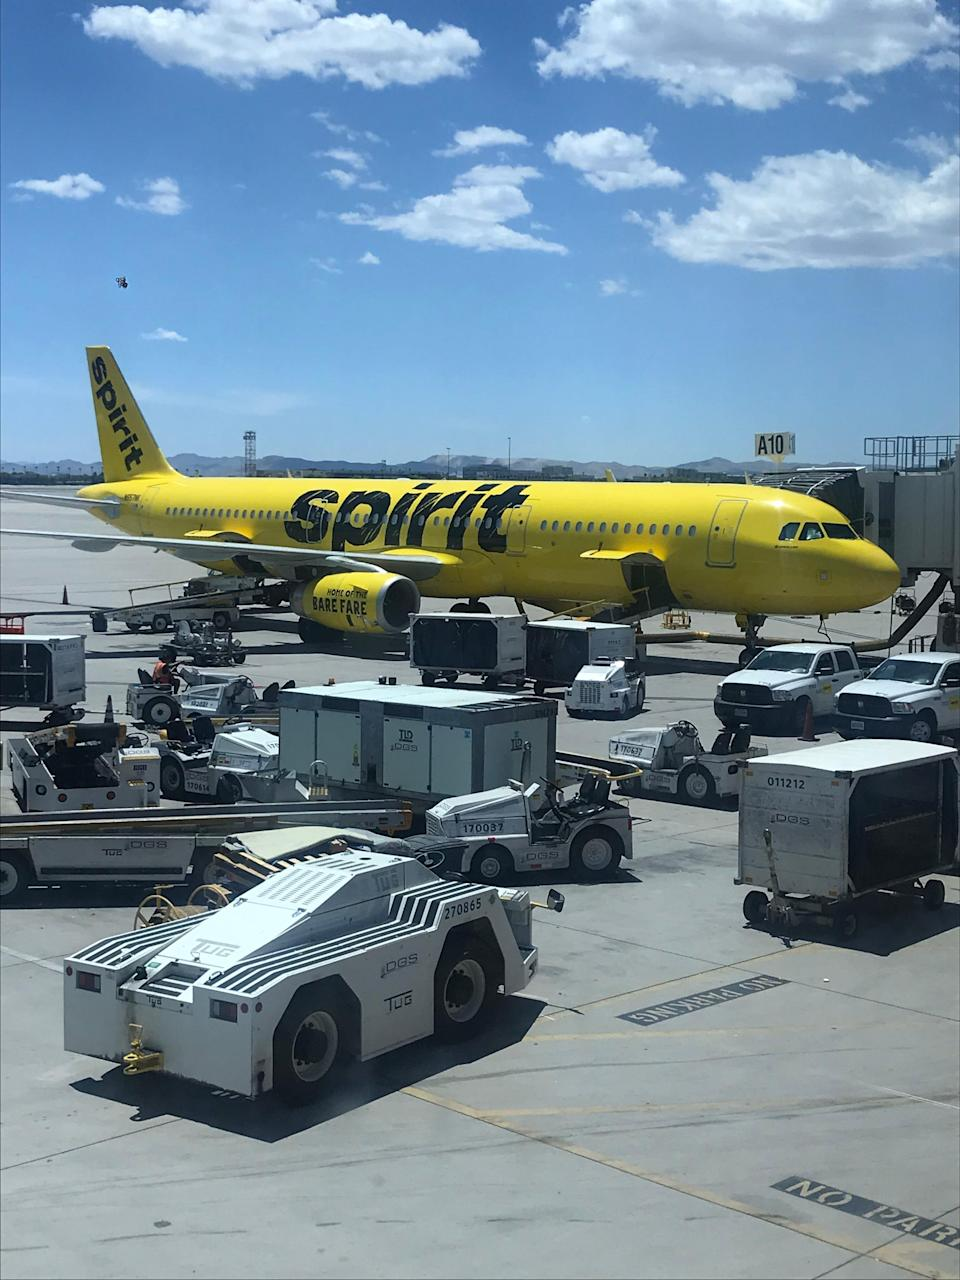 Spirit adding summer flights, CEO says 'too early to tell' if coronavirus surge grounds travelers again